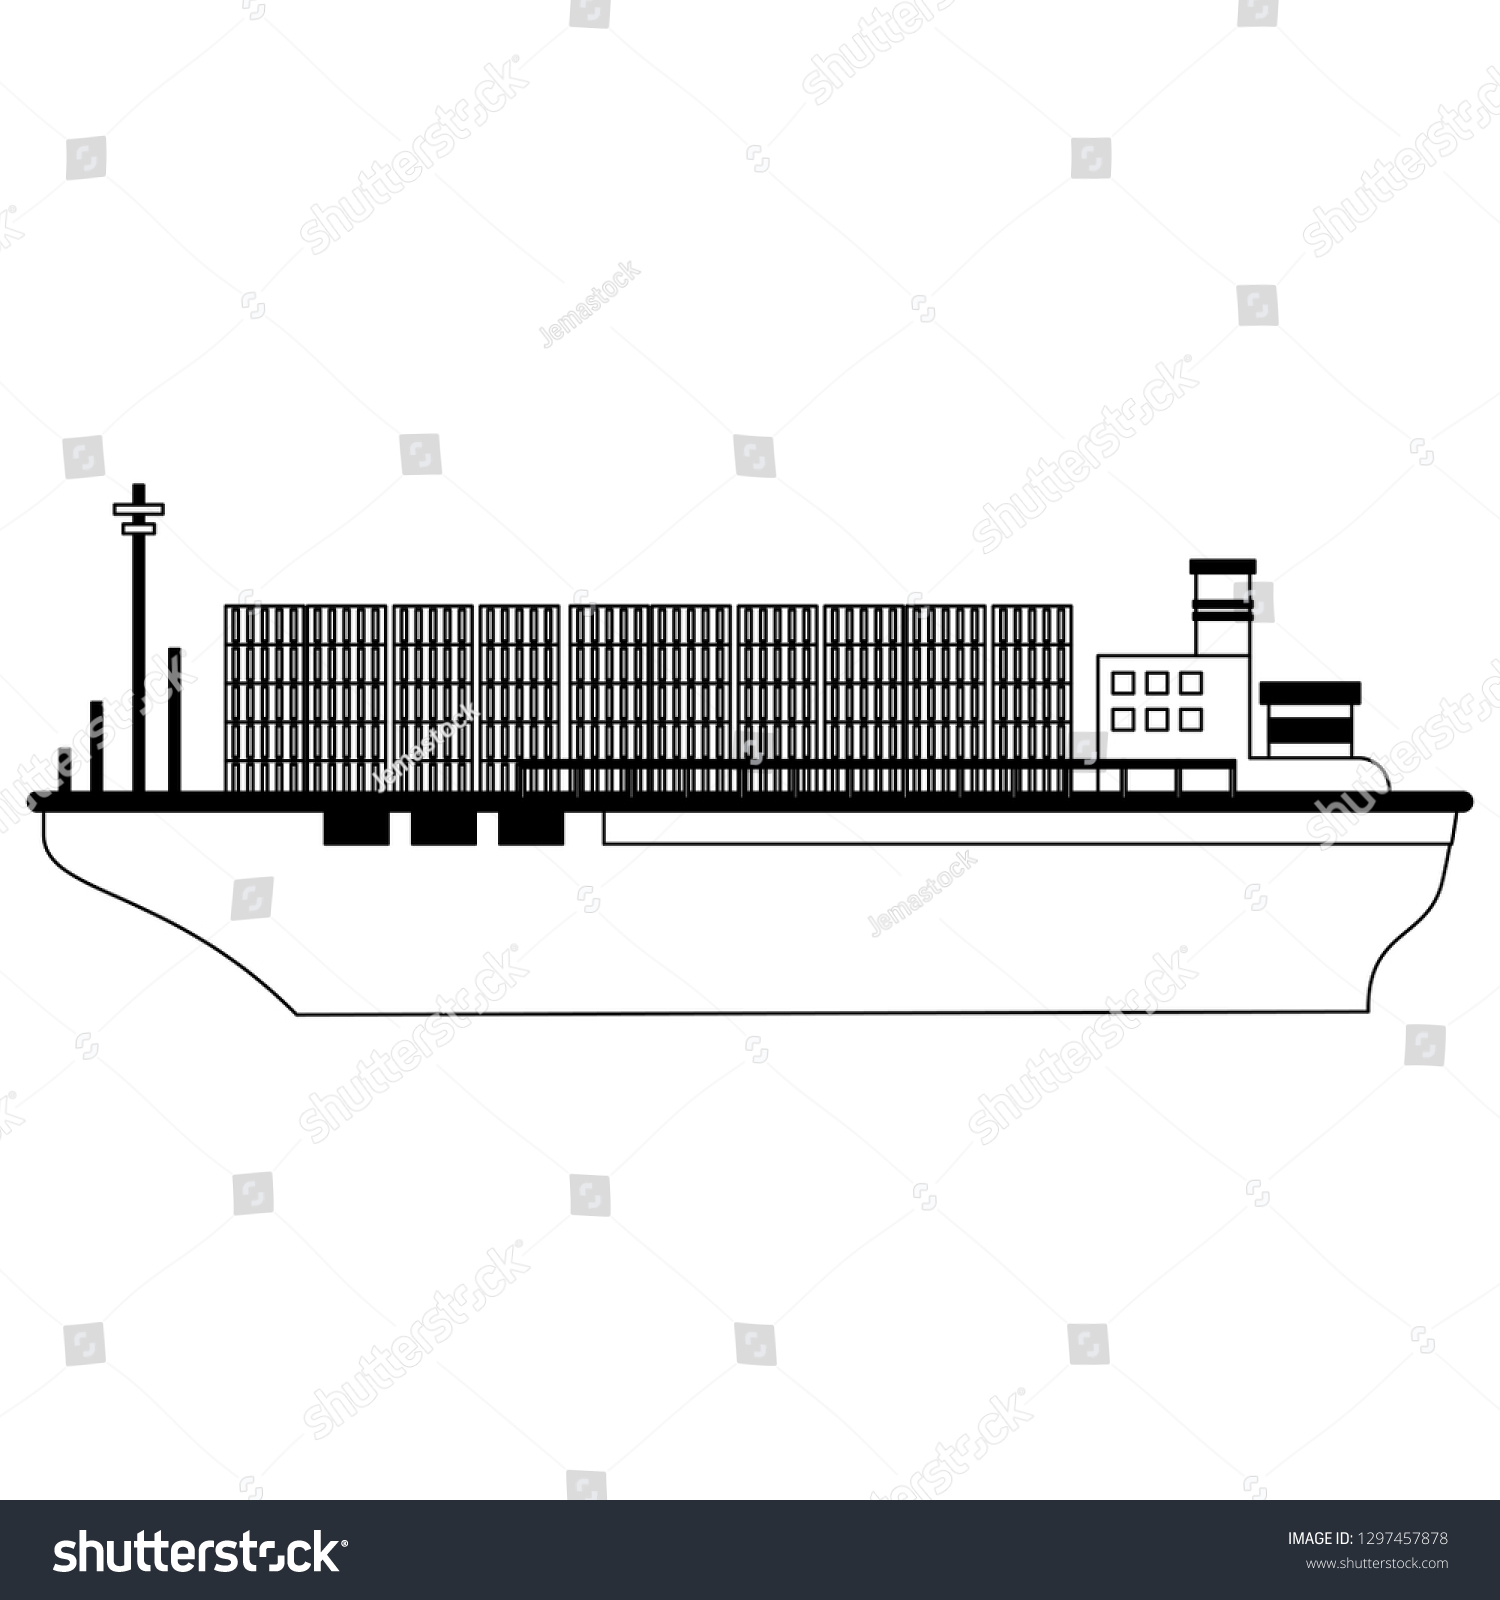 hight resolution of freighter boat with containers black and white